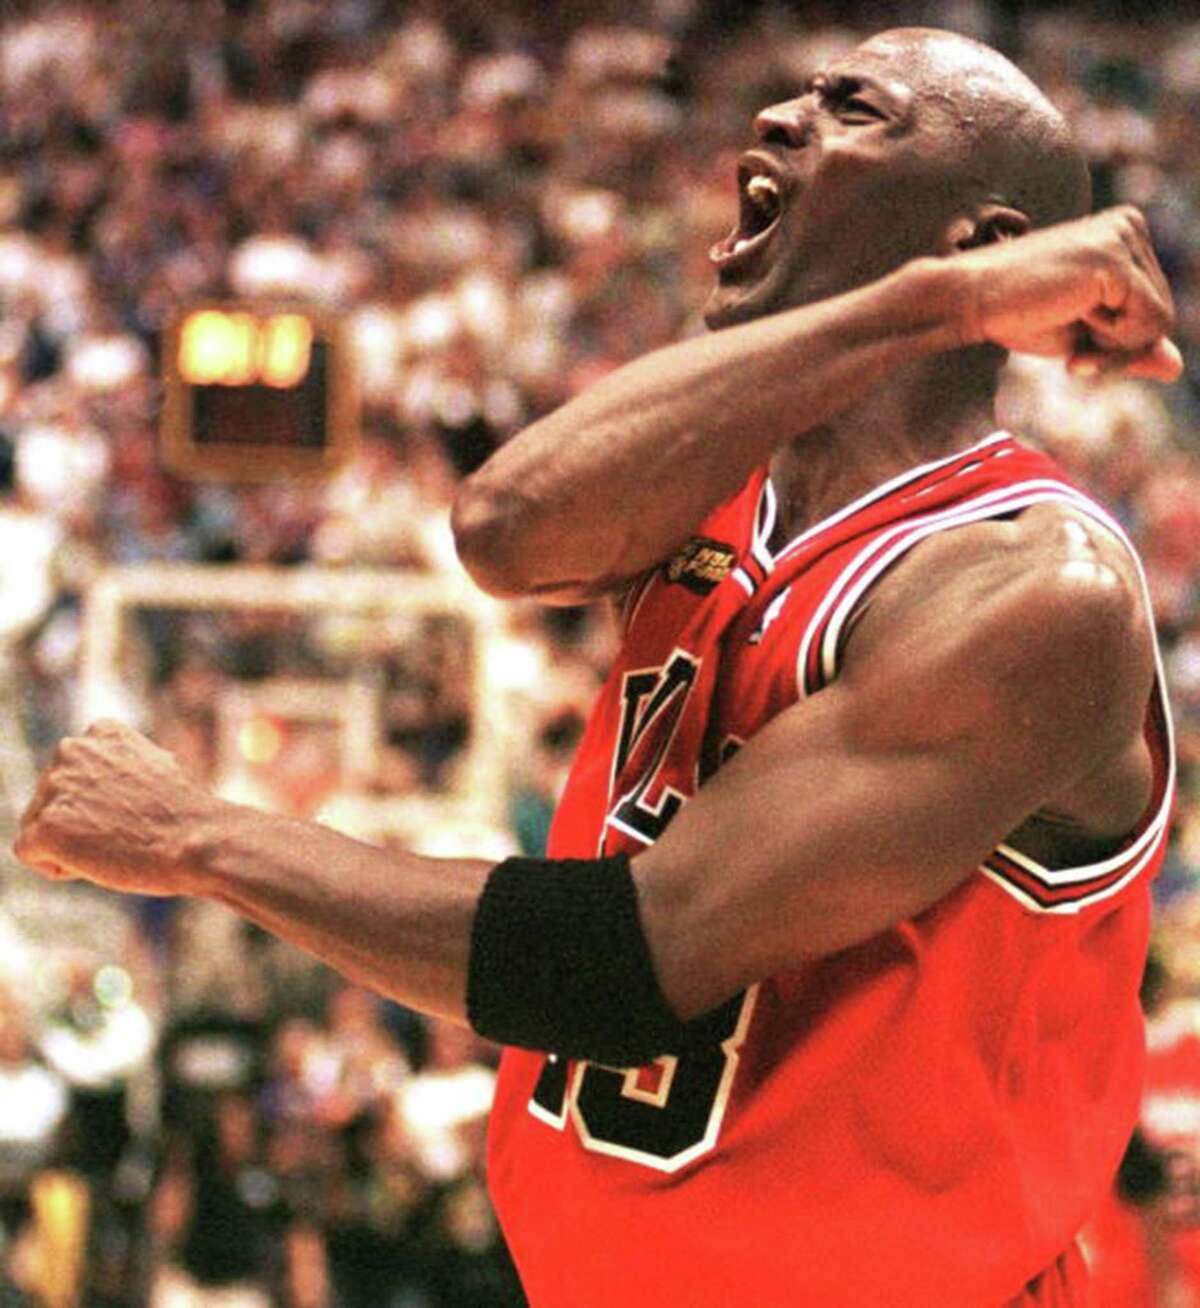 The Chicago Bulls' Michael Jordan celebrates after winning Game 6 of the NBA Finals against the Utah Jazz on June 19, 1984. (Robert Sullivan/AFP/Getty Images/TNS)